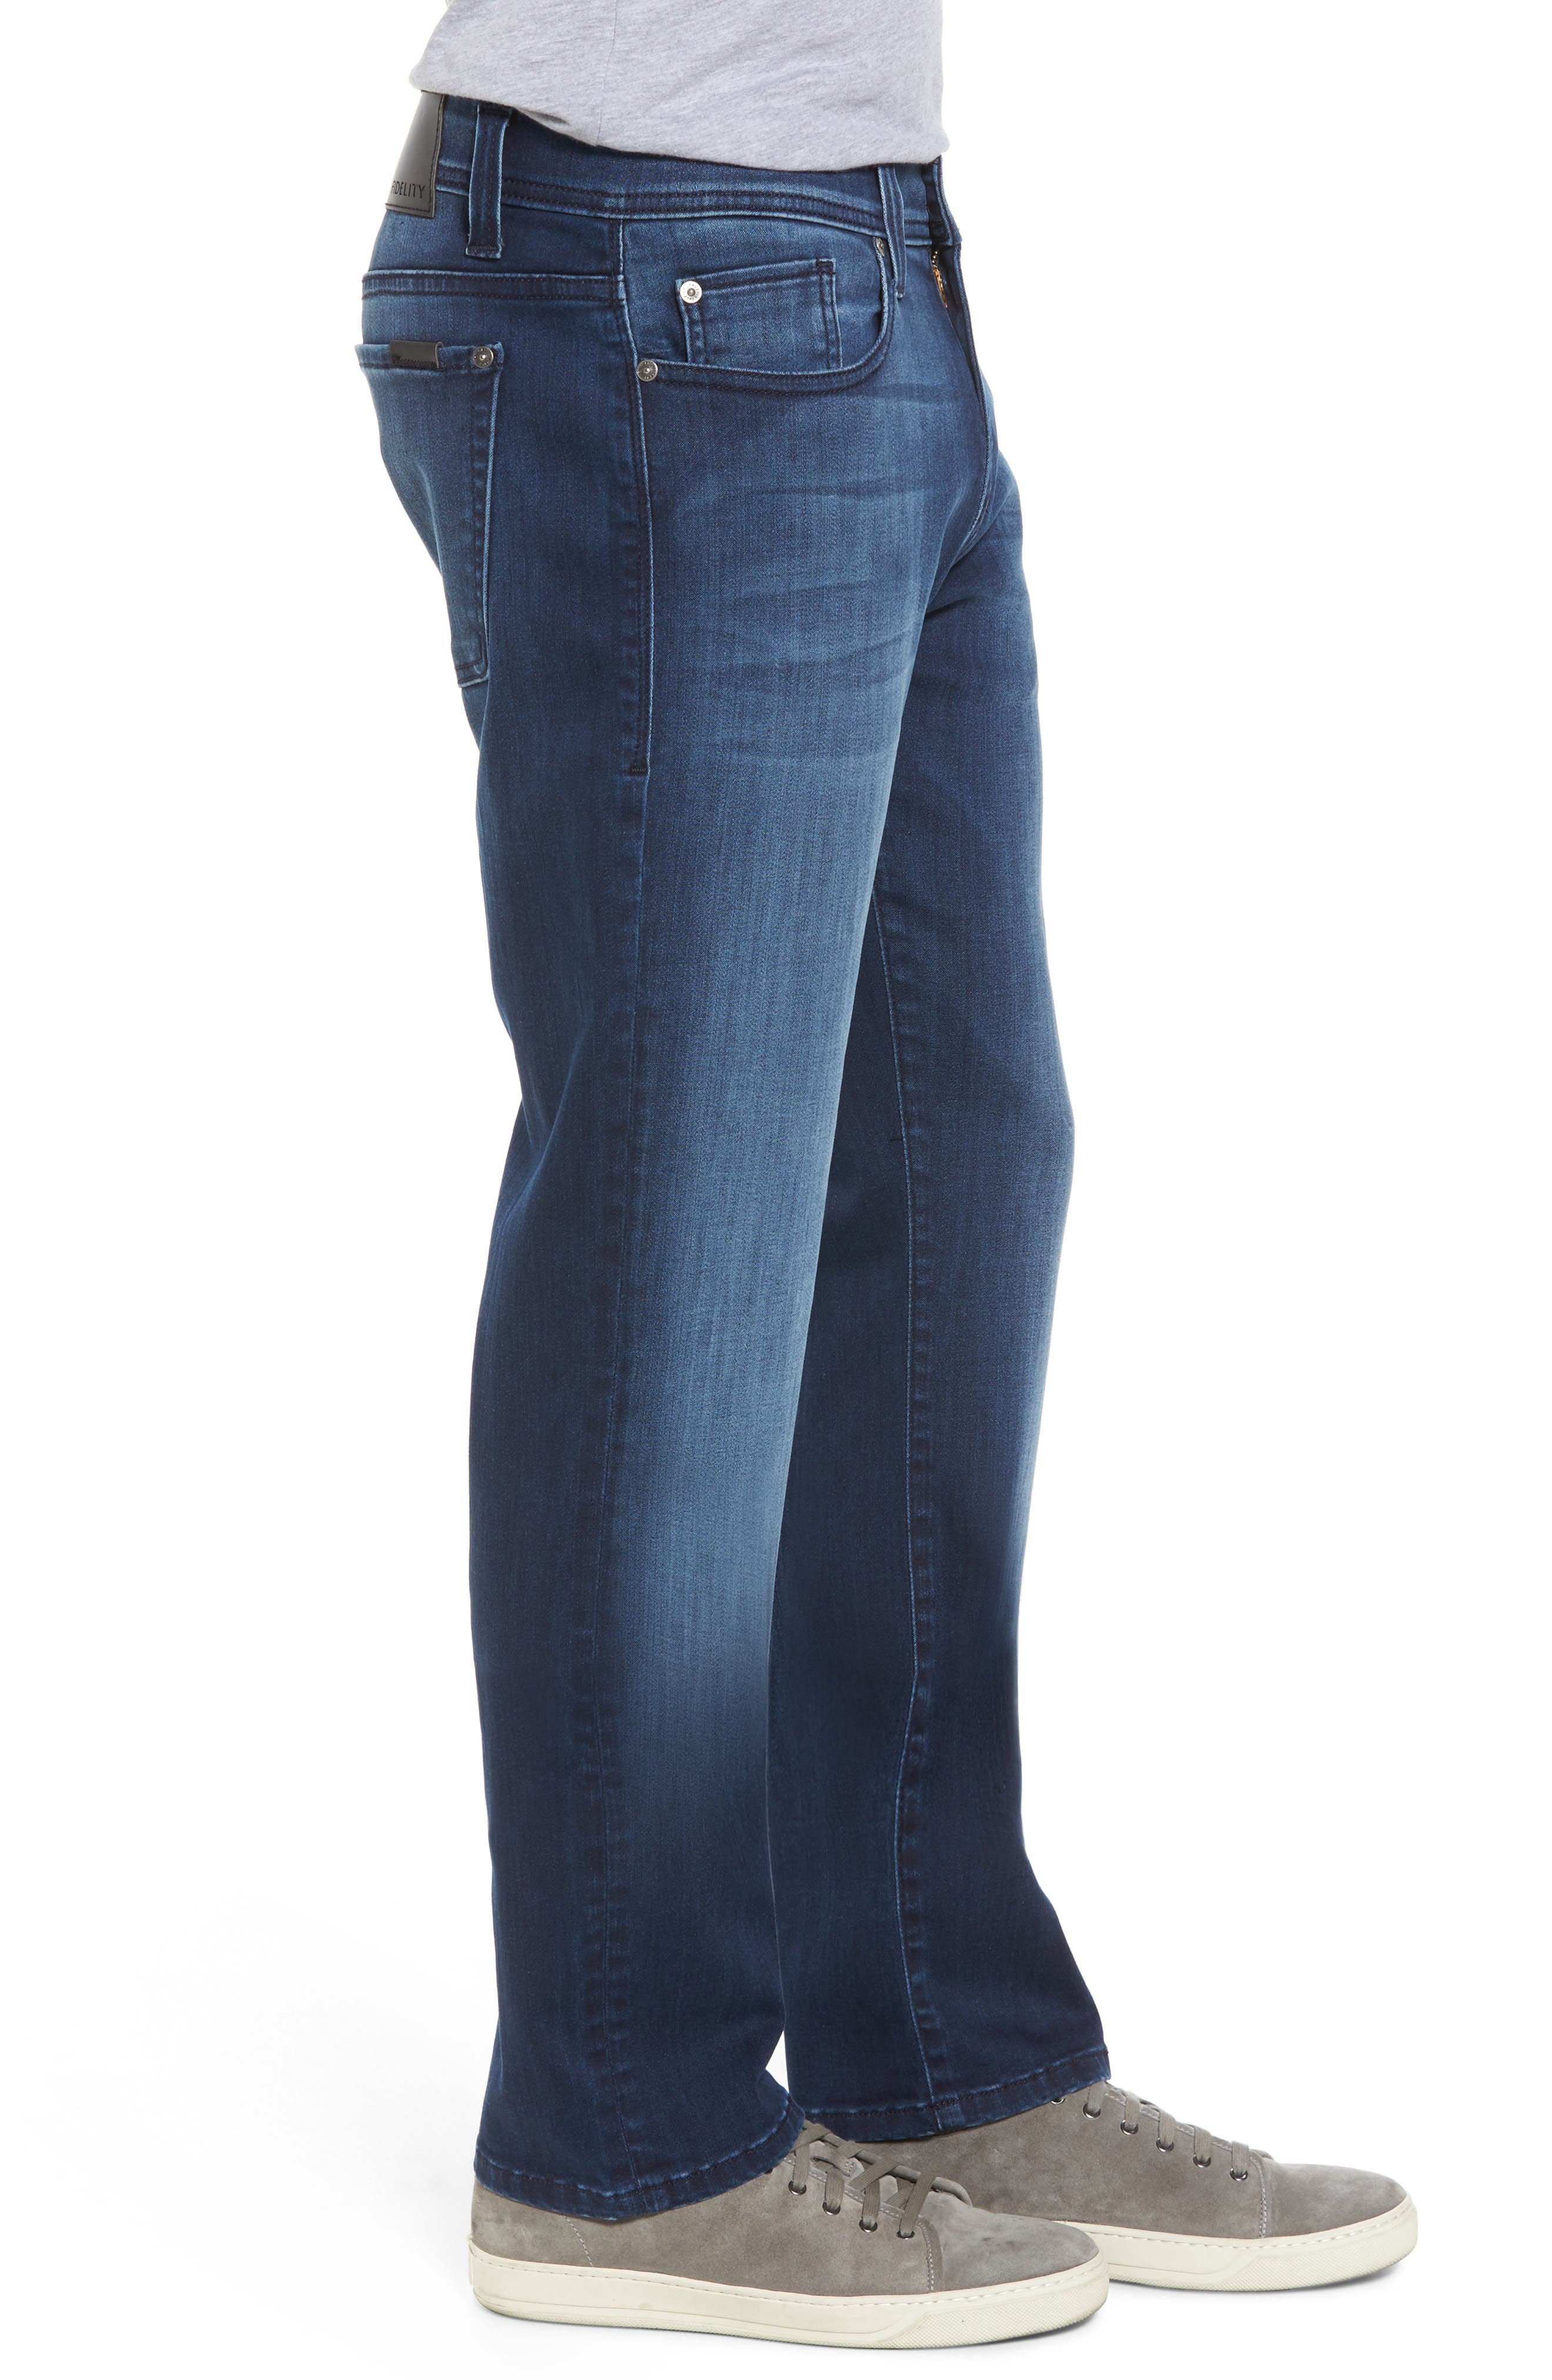 Jimmy Slim Straight Leg Jeans,                             Alternate thumbnail 3, color,                             Galaxy Blue